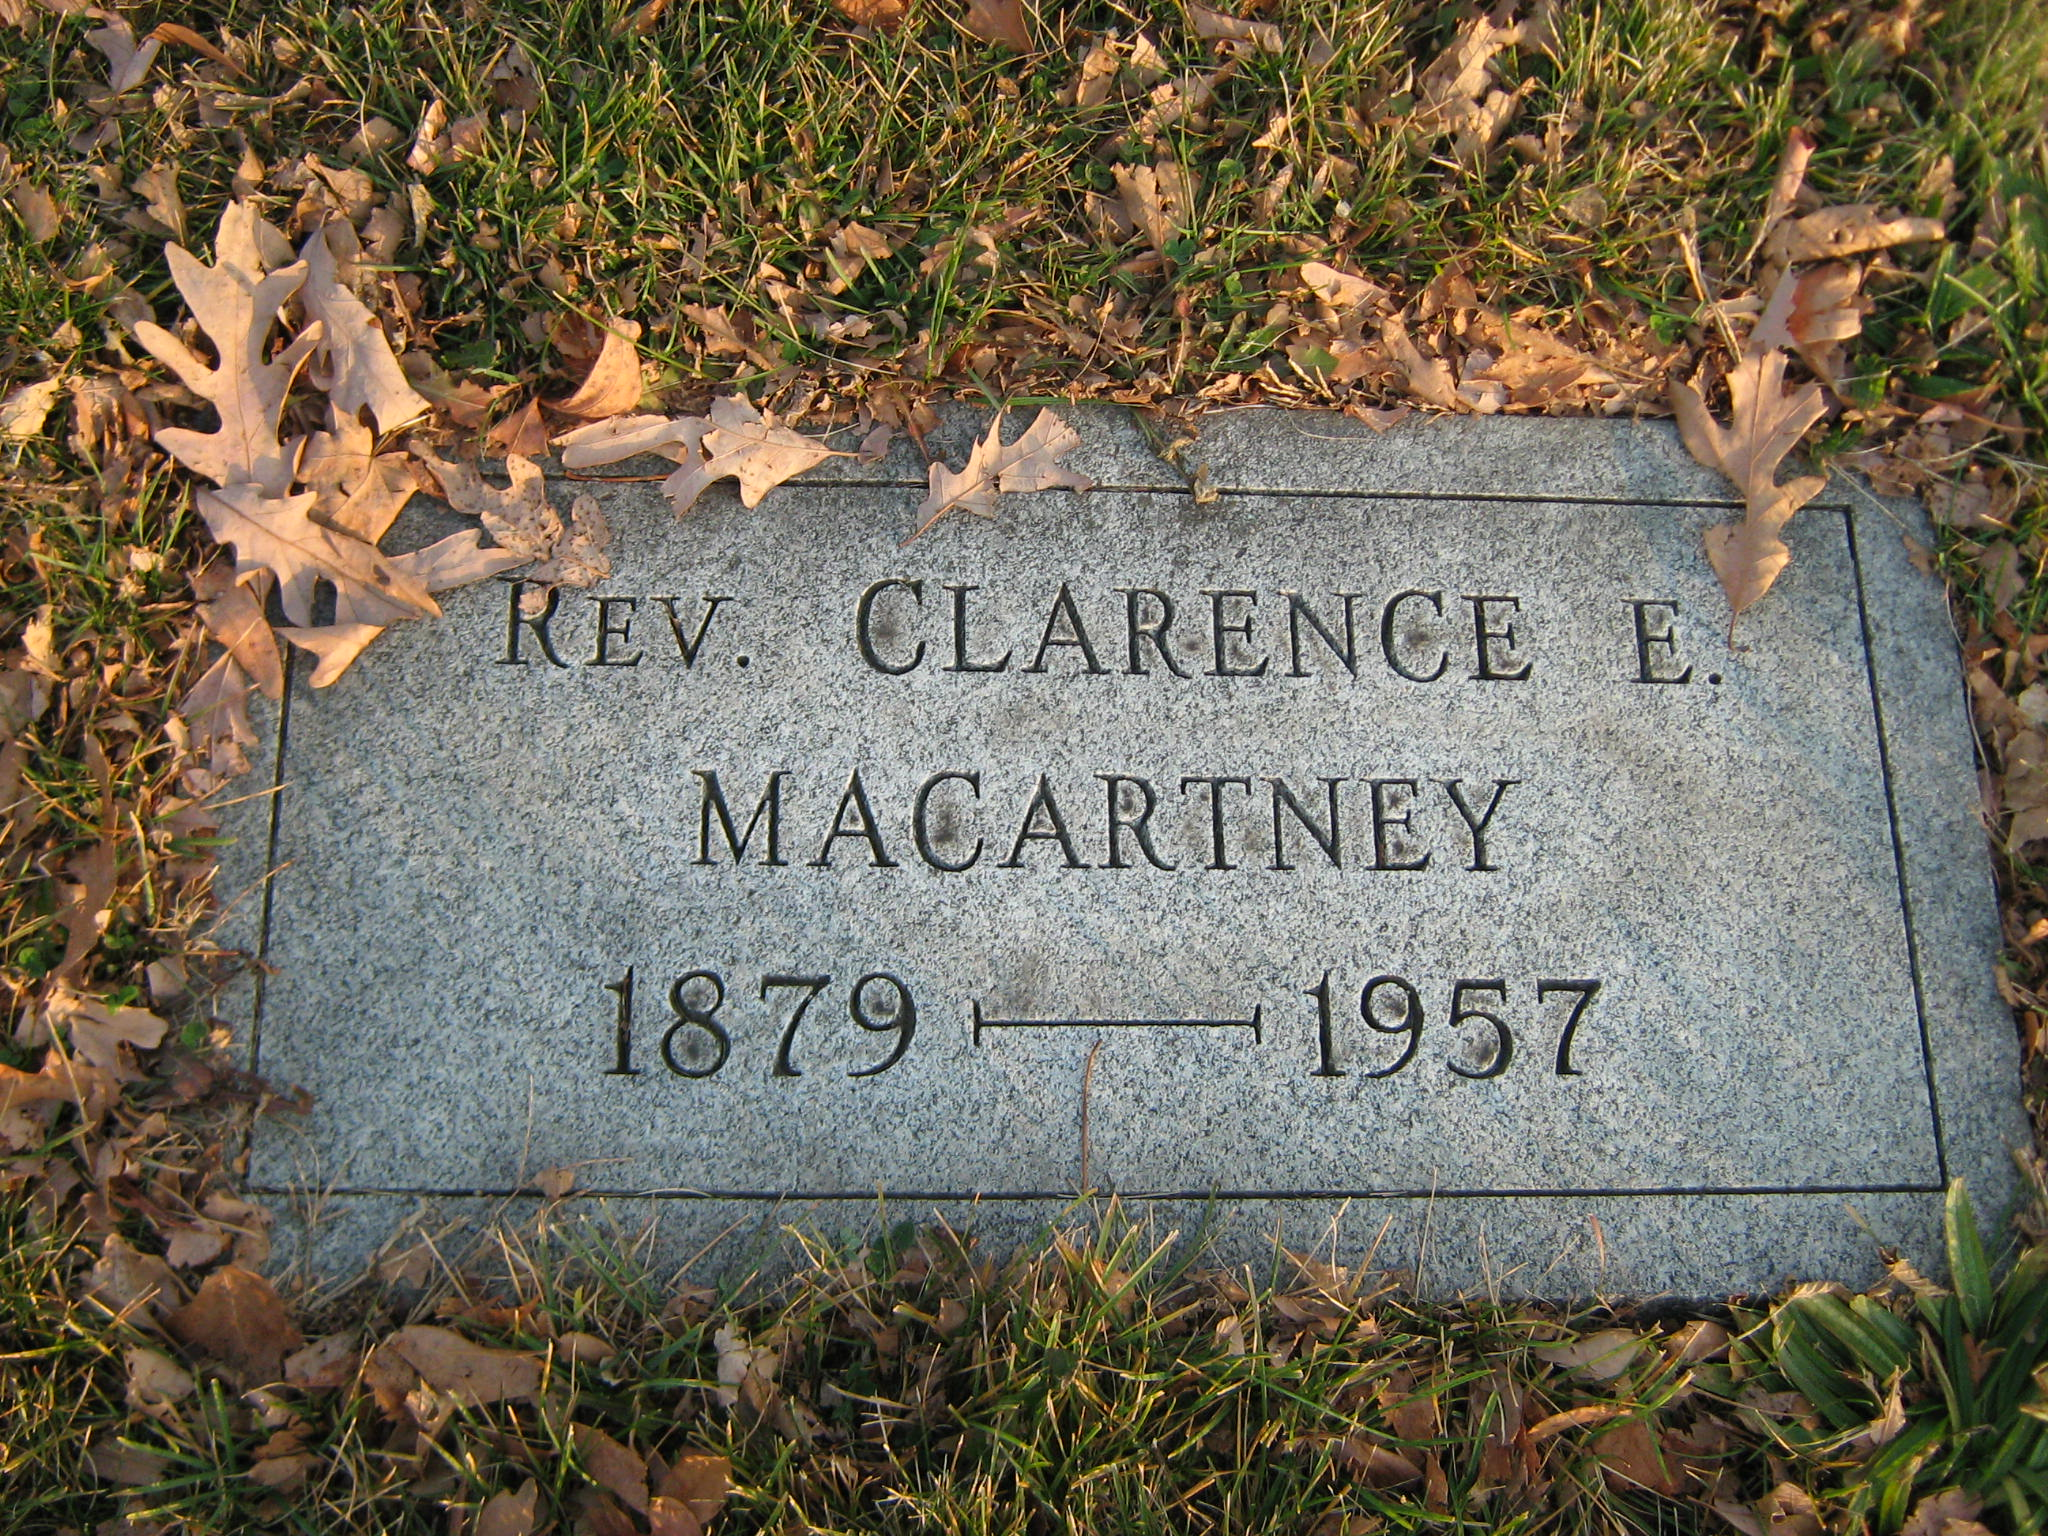 Clarence Edward Noble Macartney is buried at Grandview Cemetery, Beaver Falls, Pennsylvania.